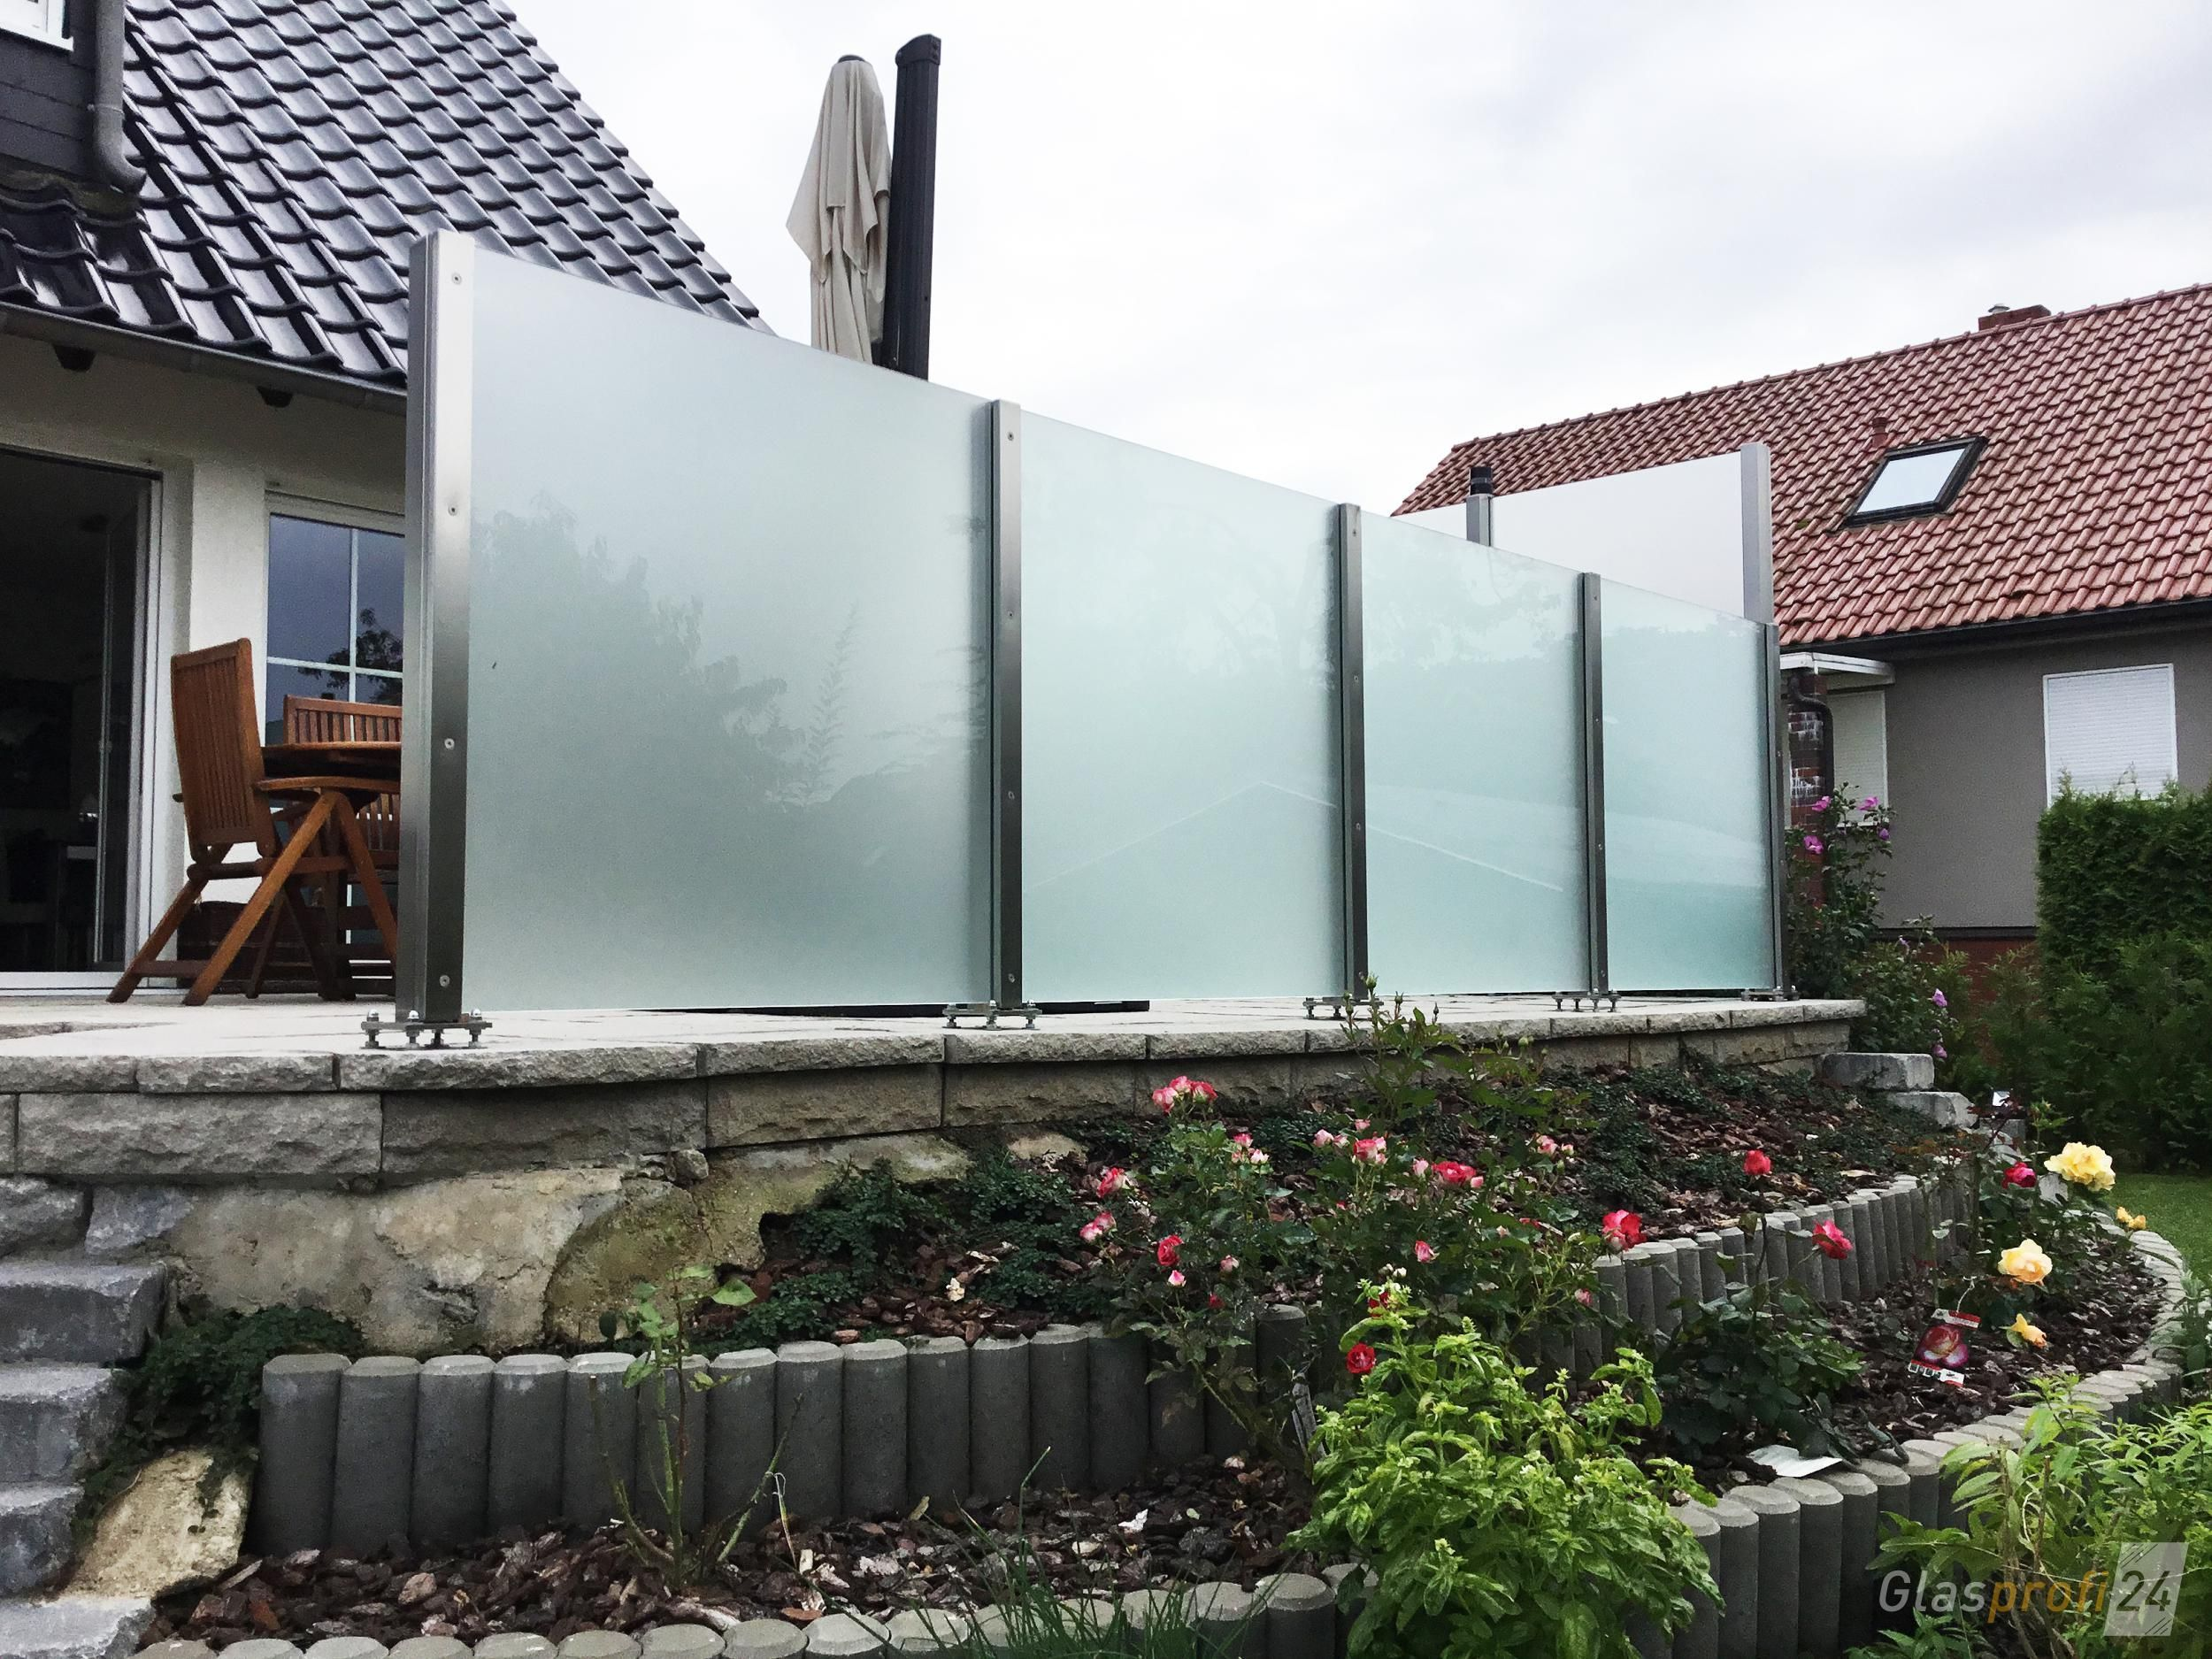 Wind Protection For The Terrace In 2020 Windschutz Sichtschutz